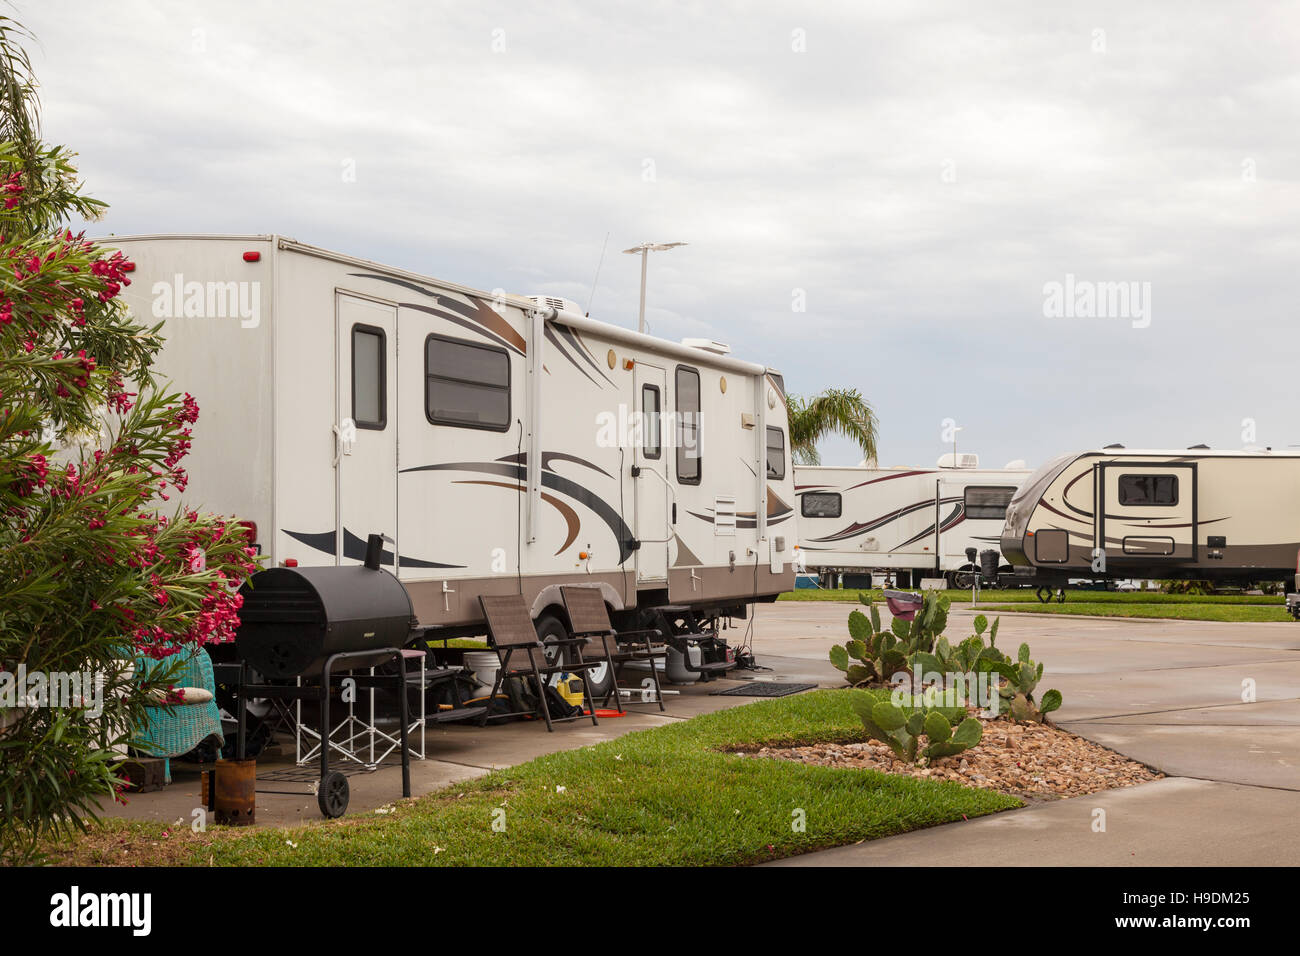 Recreational vehicles at a campsite rv park in southern united states - Stock Image